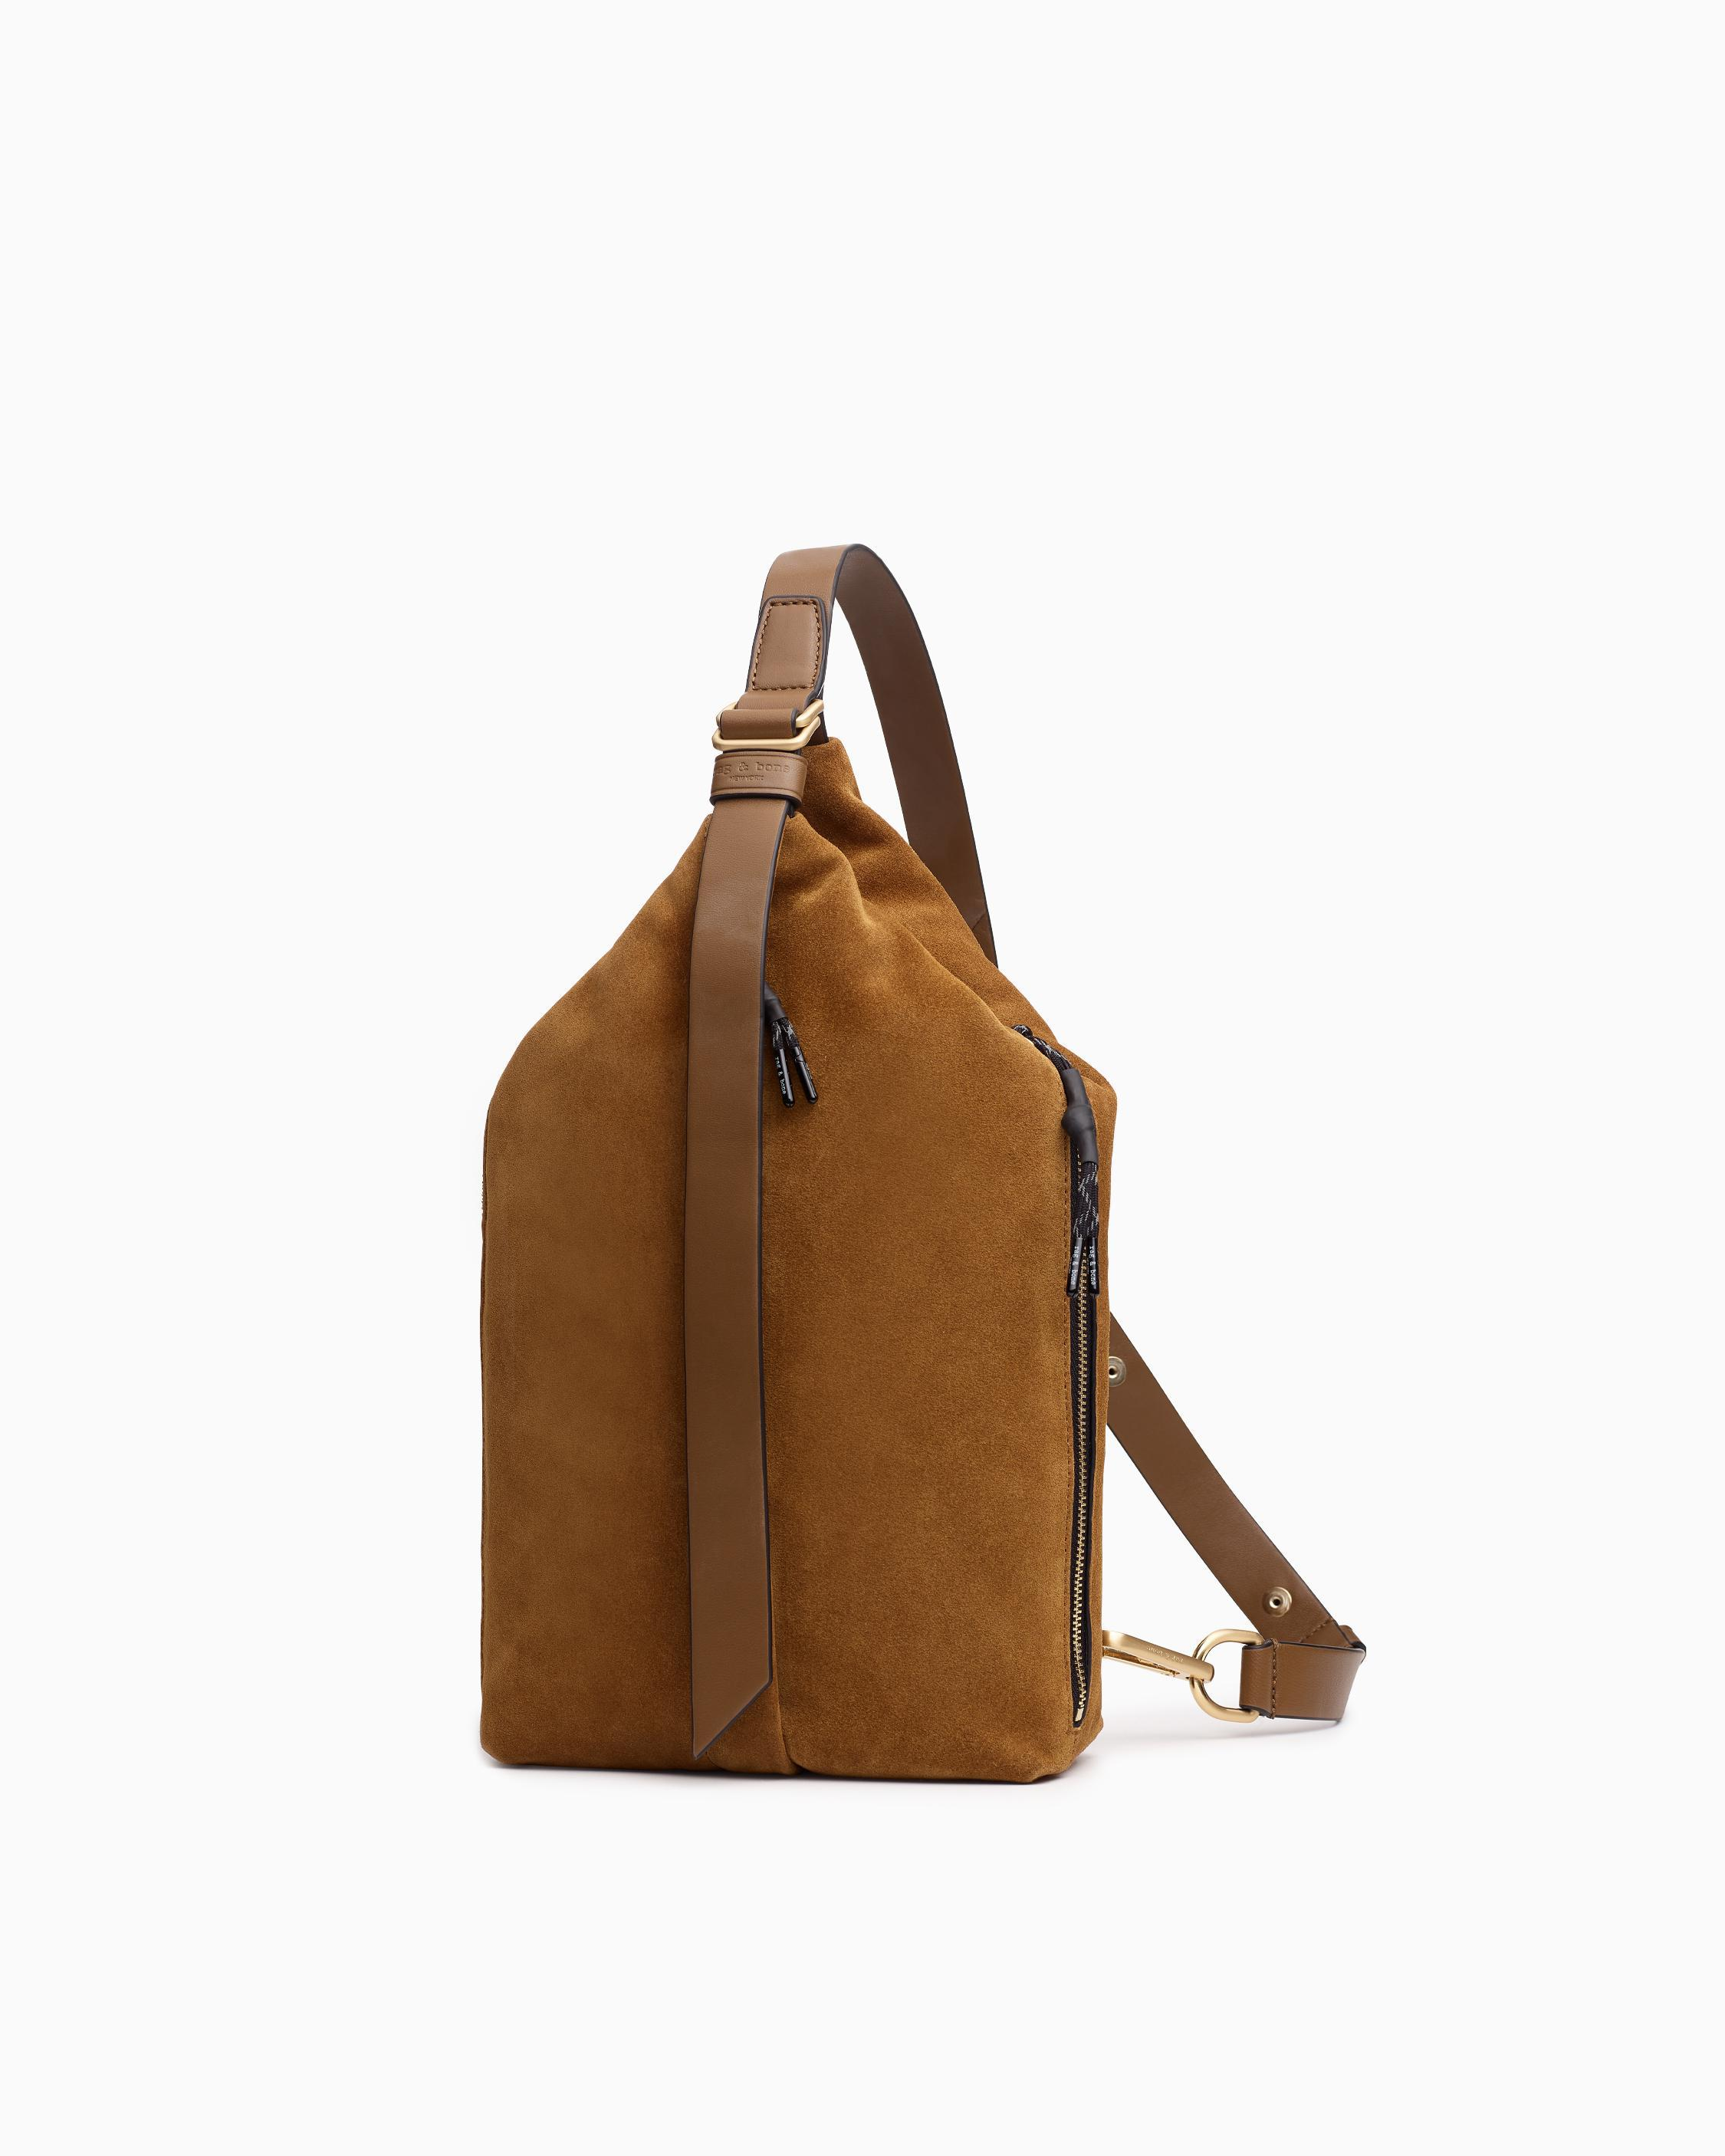 Hayden sling - suede and recycled materials